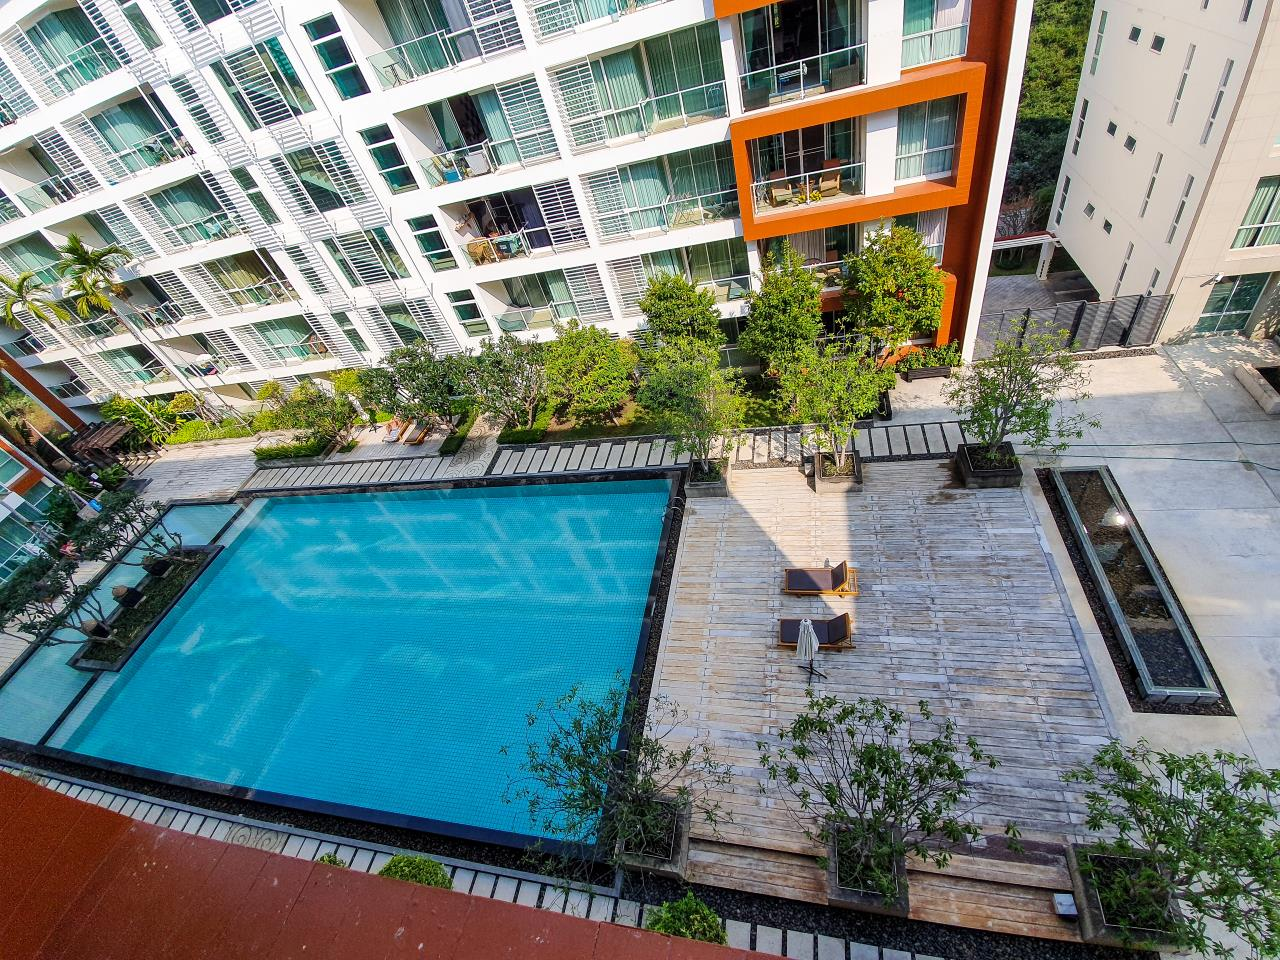 HOME - Real Estate Service Agency's The Breeze Hua Hin / 2 Beds (FOR RENT), เดอะ บรีซ หัวหิน / 2 ห้องนอน (ให้เช่า) T008 21